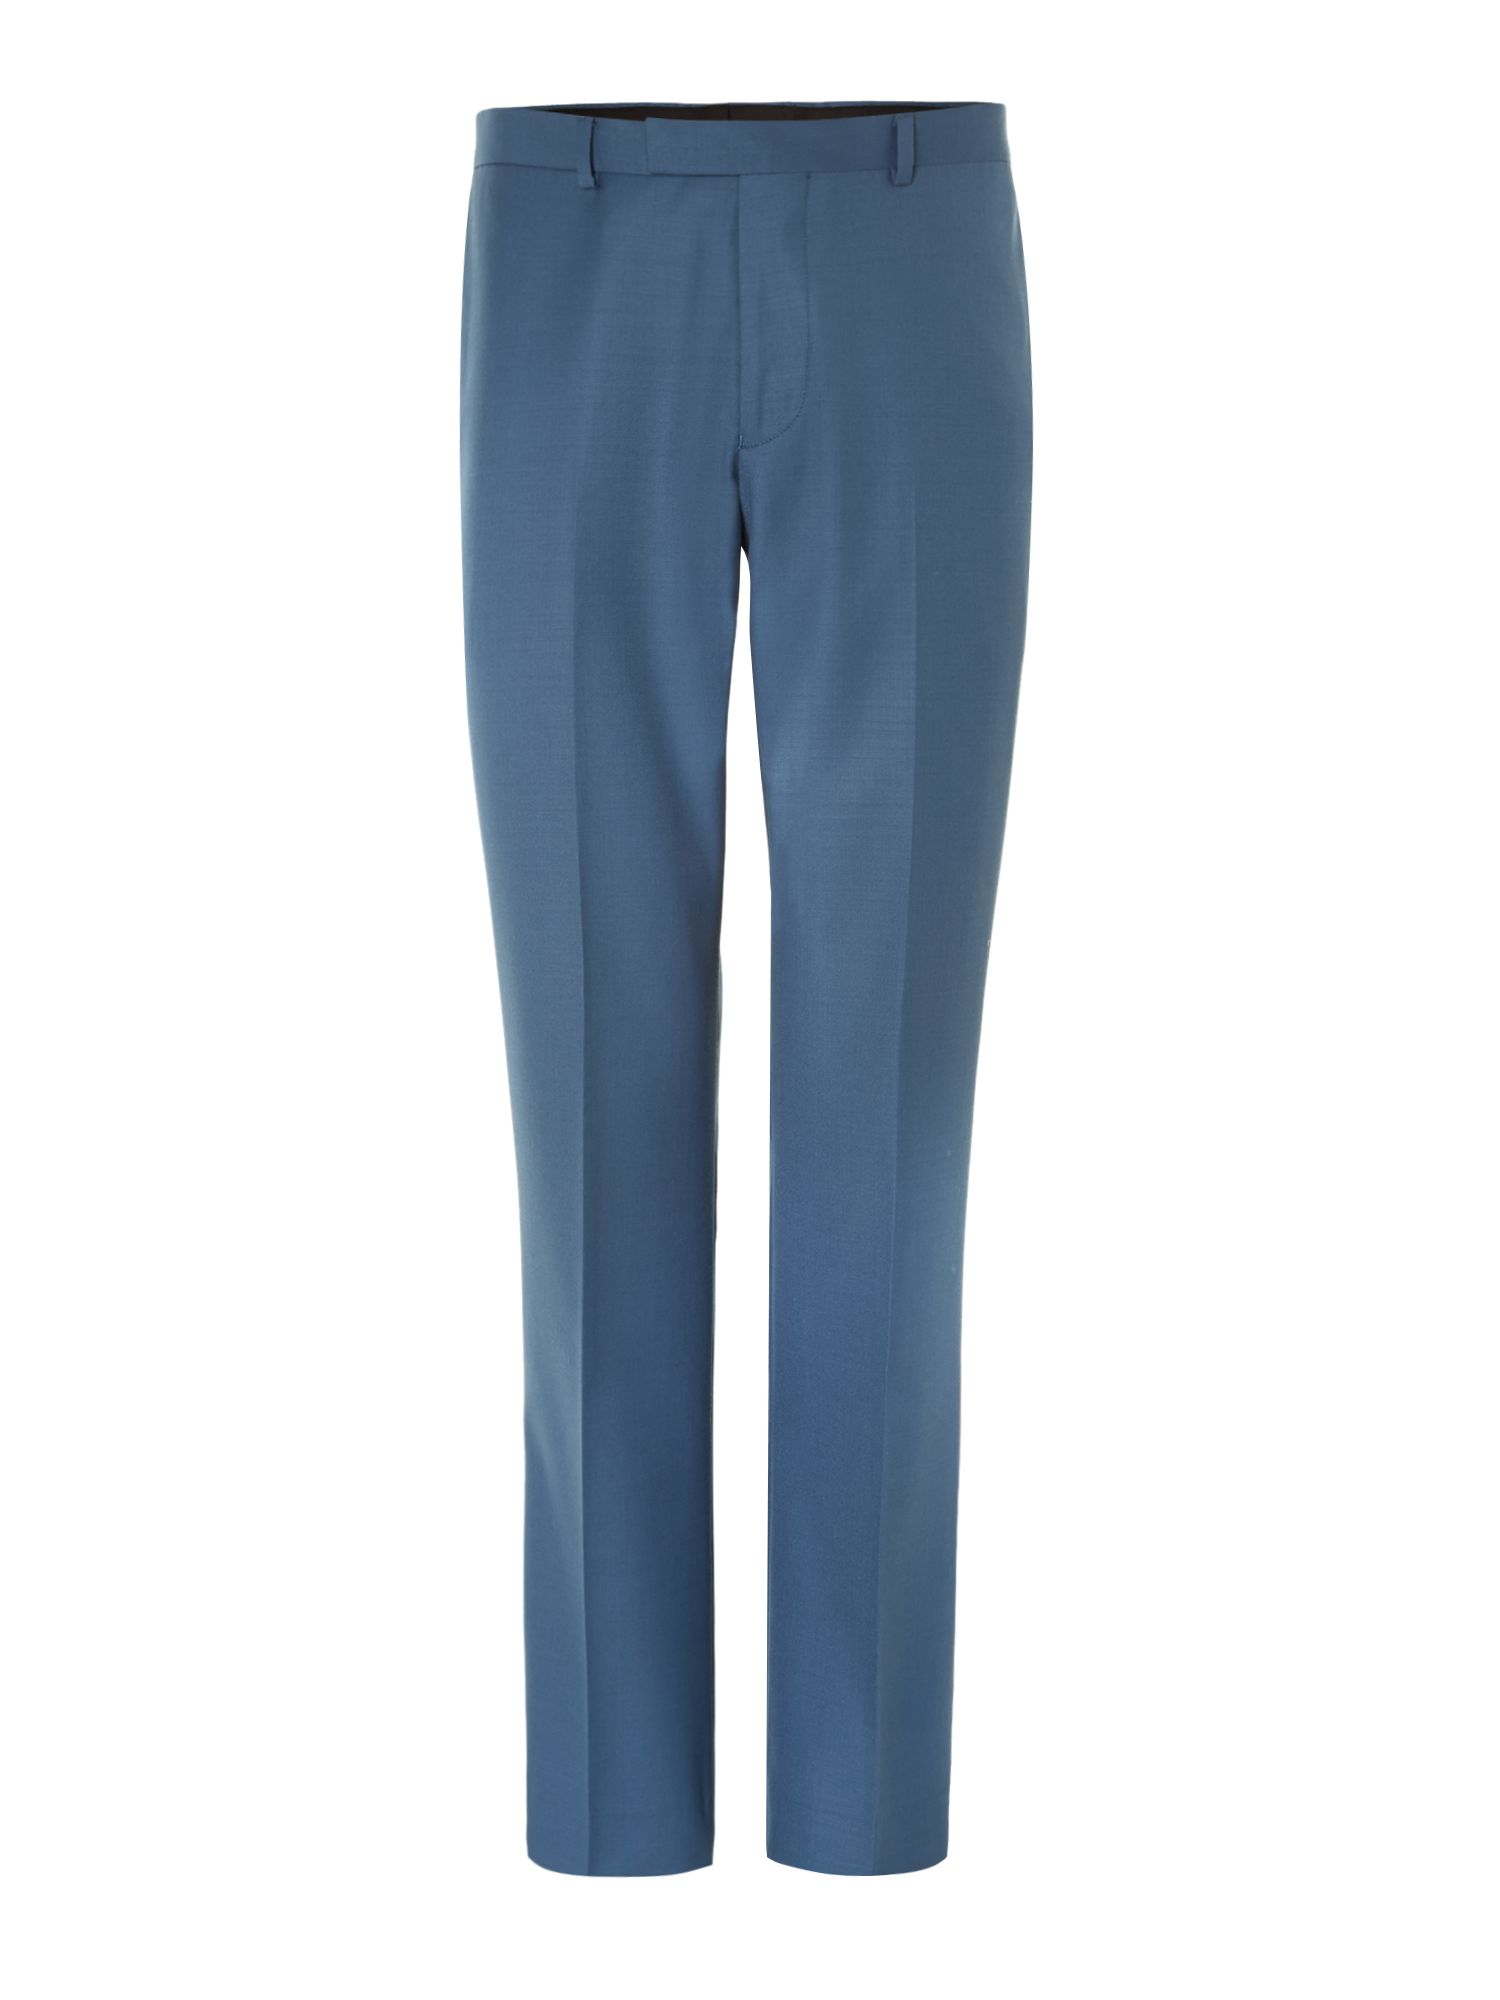 Plain tonic formal trouser